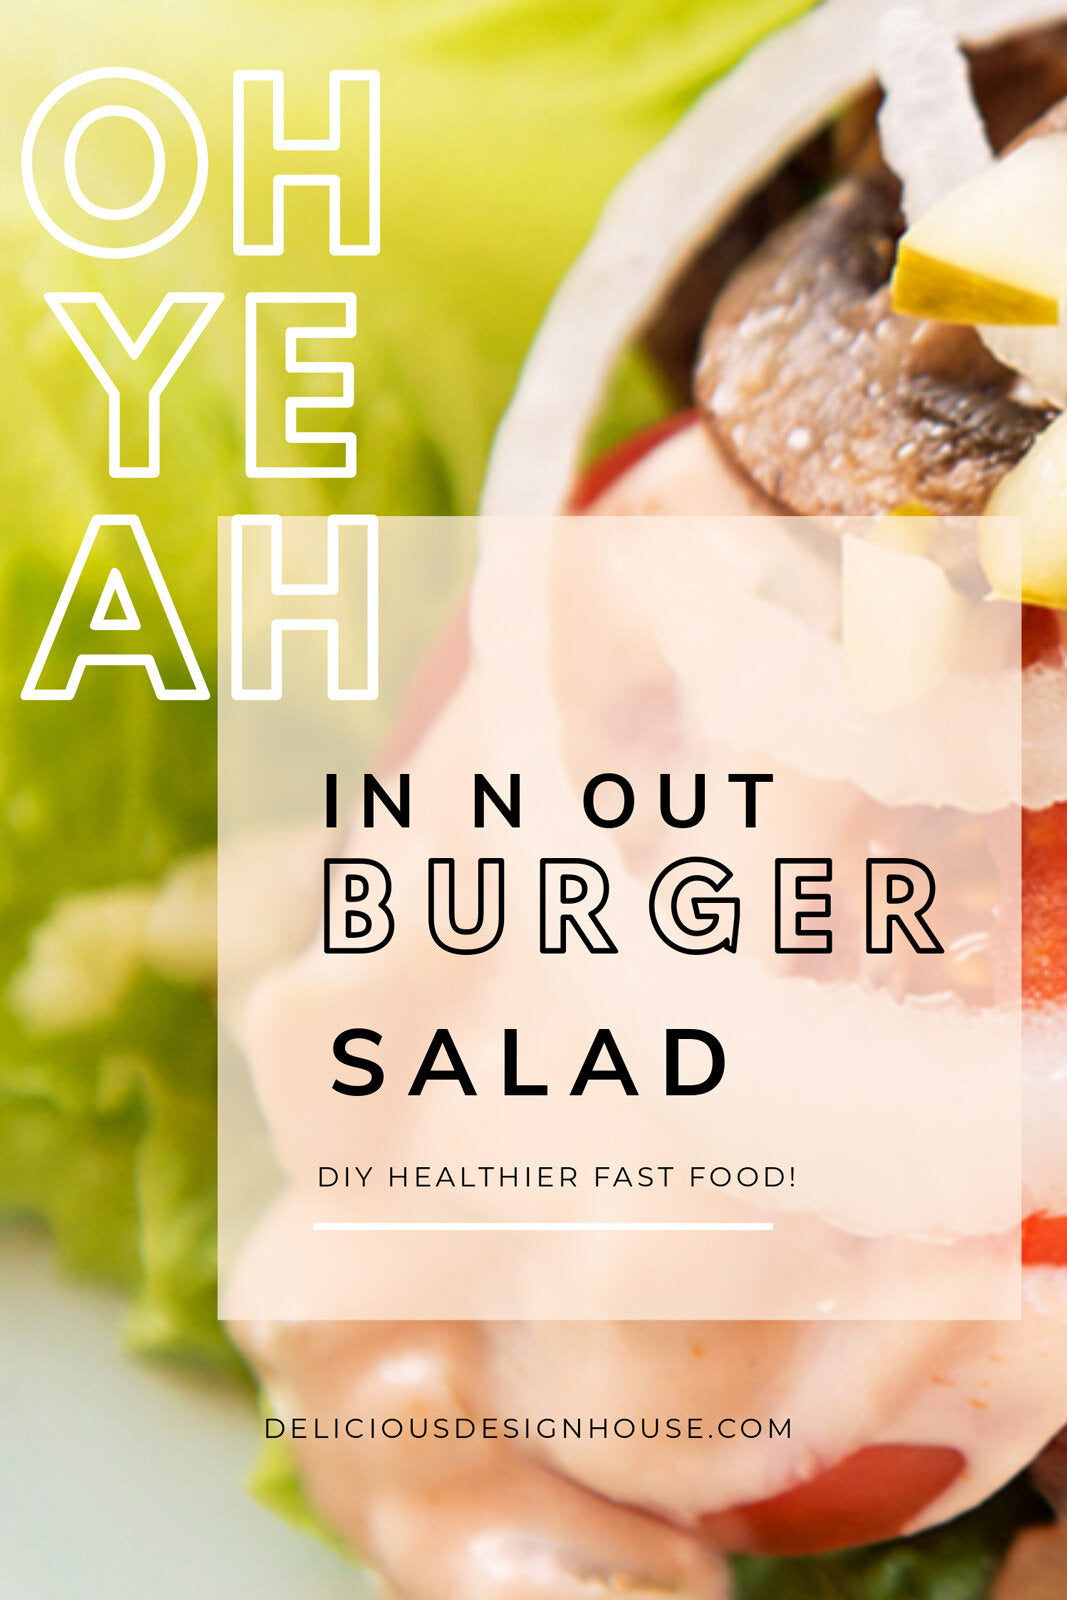 In n Out Burger Salad Recipe — DIY your fast food